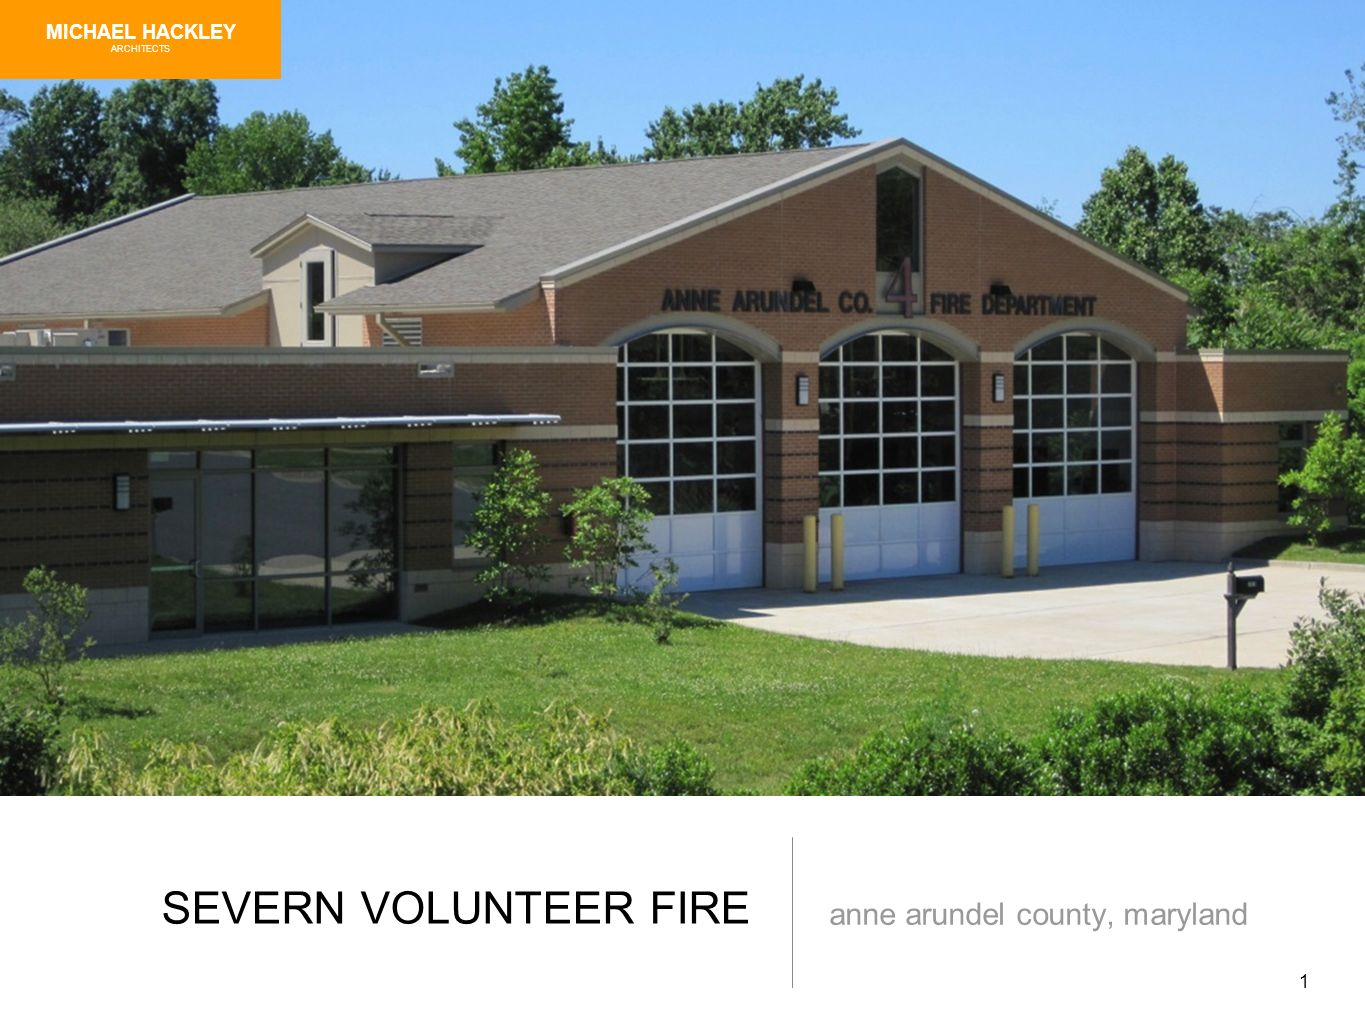 2 SEVERN FIRE STATION #4 RELEVANT EXPERIENCE Name of project Severn Fire Station #4 Type of building Fire and EMS Facility Project location Severn, Anne Arundel County, Maryland Total project cost 2.1 million Project description New one story 11,500 SF six bay facility for a combination volunteer and career departments.